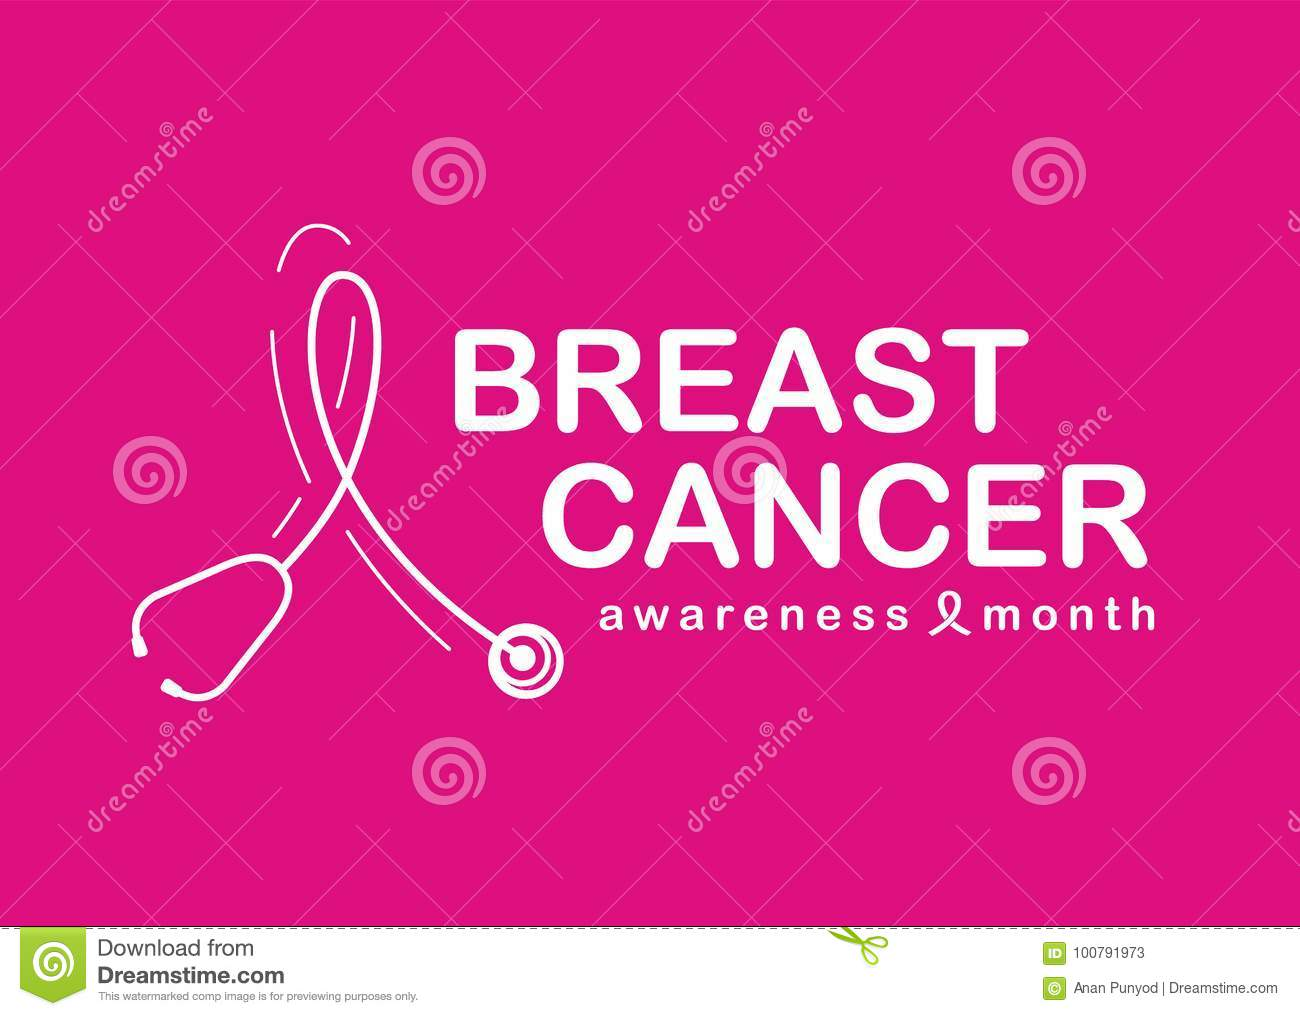 Breast Cancer Awareness month with white stethoscope shaped as a ribbon symbol on pink background vector design